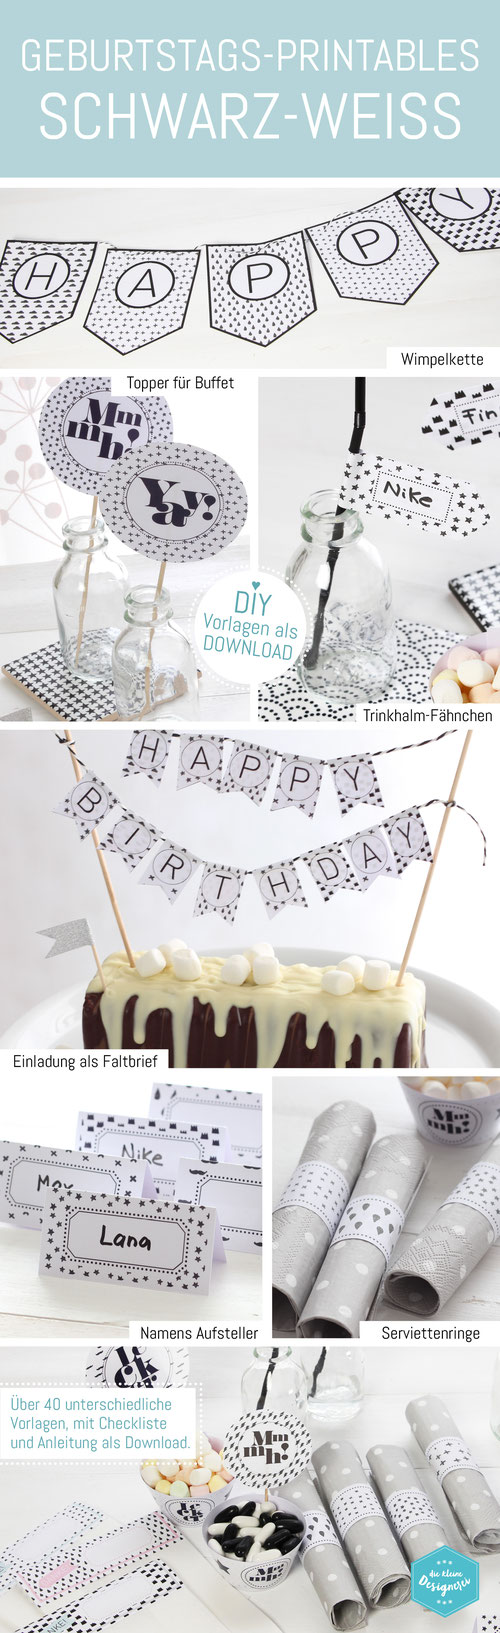 diy party printable in schwarz weiss diy geburtstagsparty pinterest geburtstag. Black Bedroom Furniture Sets. Home Design Ideas